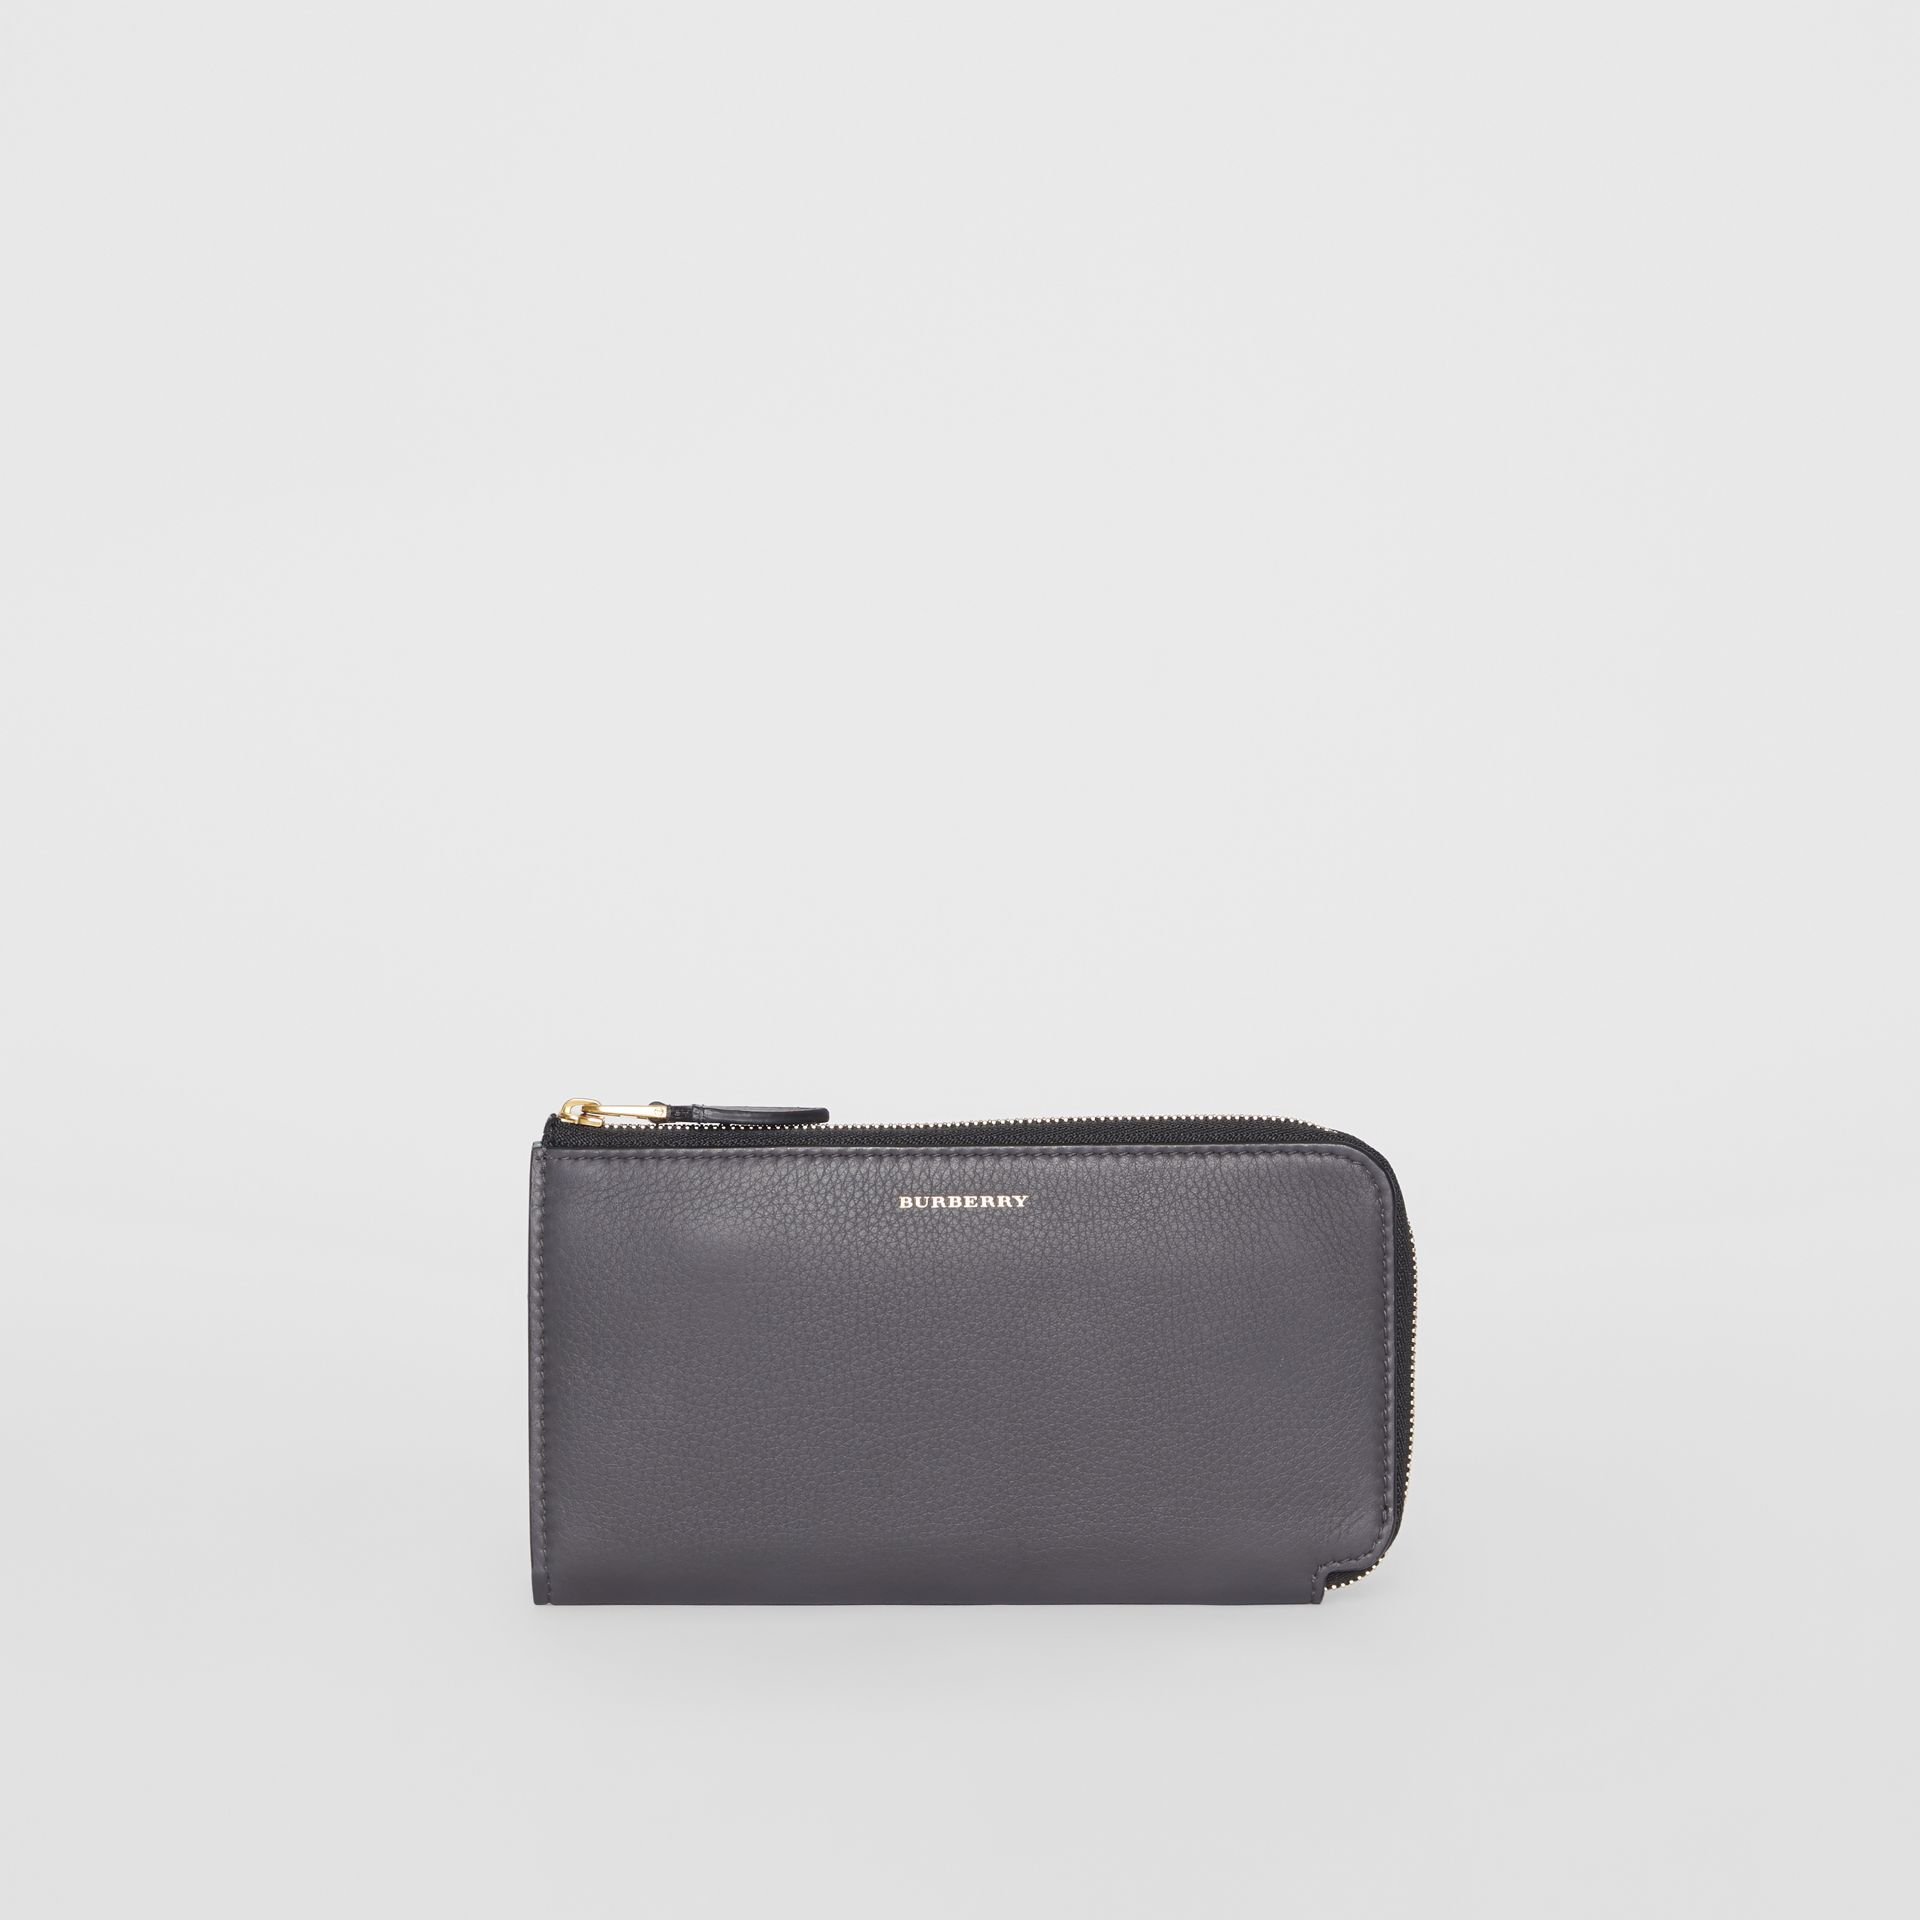 Two-tone Leather Ziparound Wallet and Coin Case in Charcoal Grey - Women | Burberry - gallery image 2